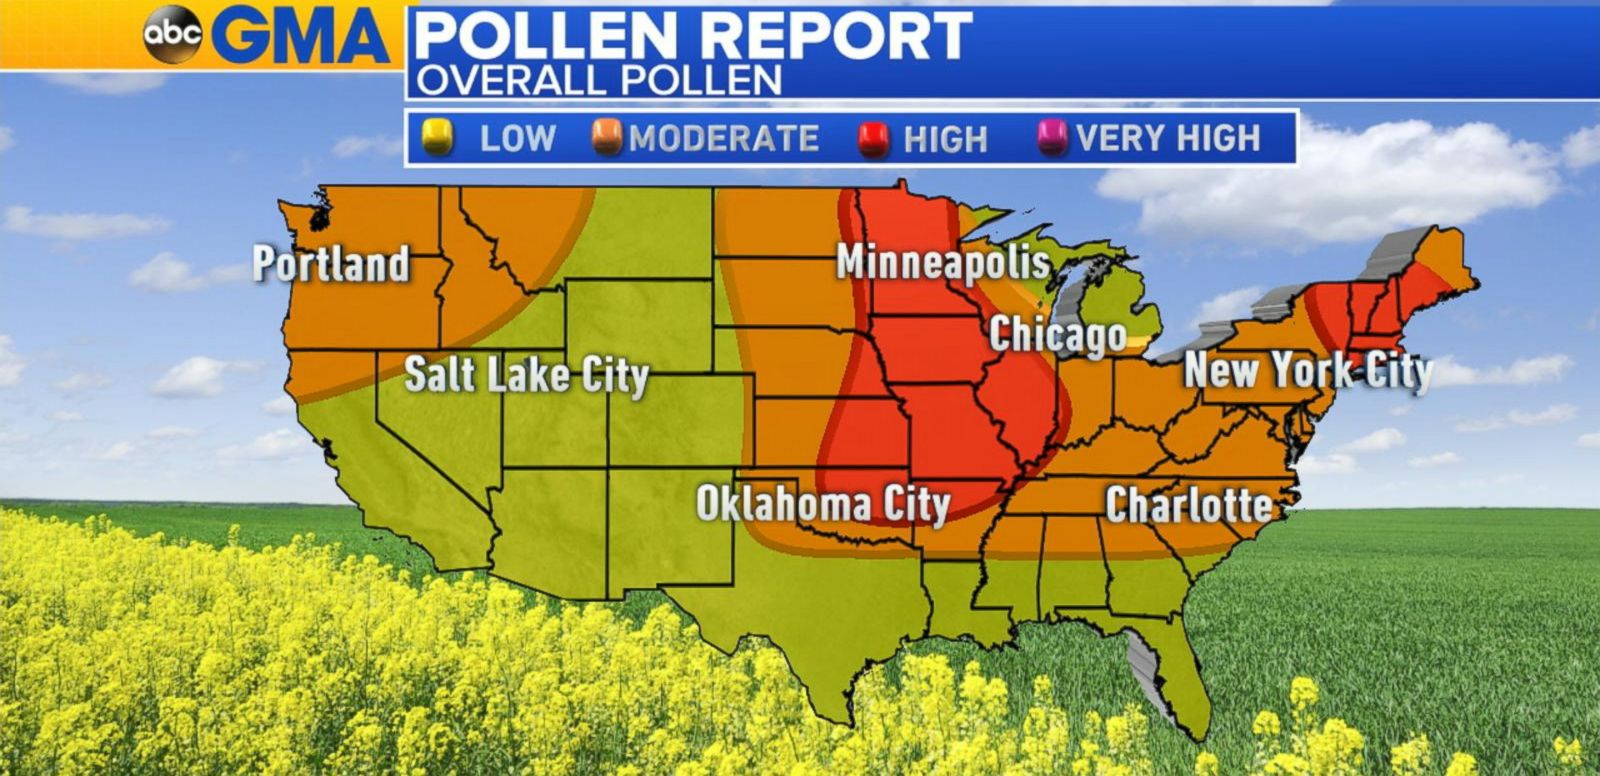 VIDEO: High Pollen From the Plains to the Northeast